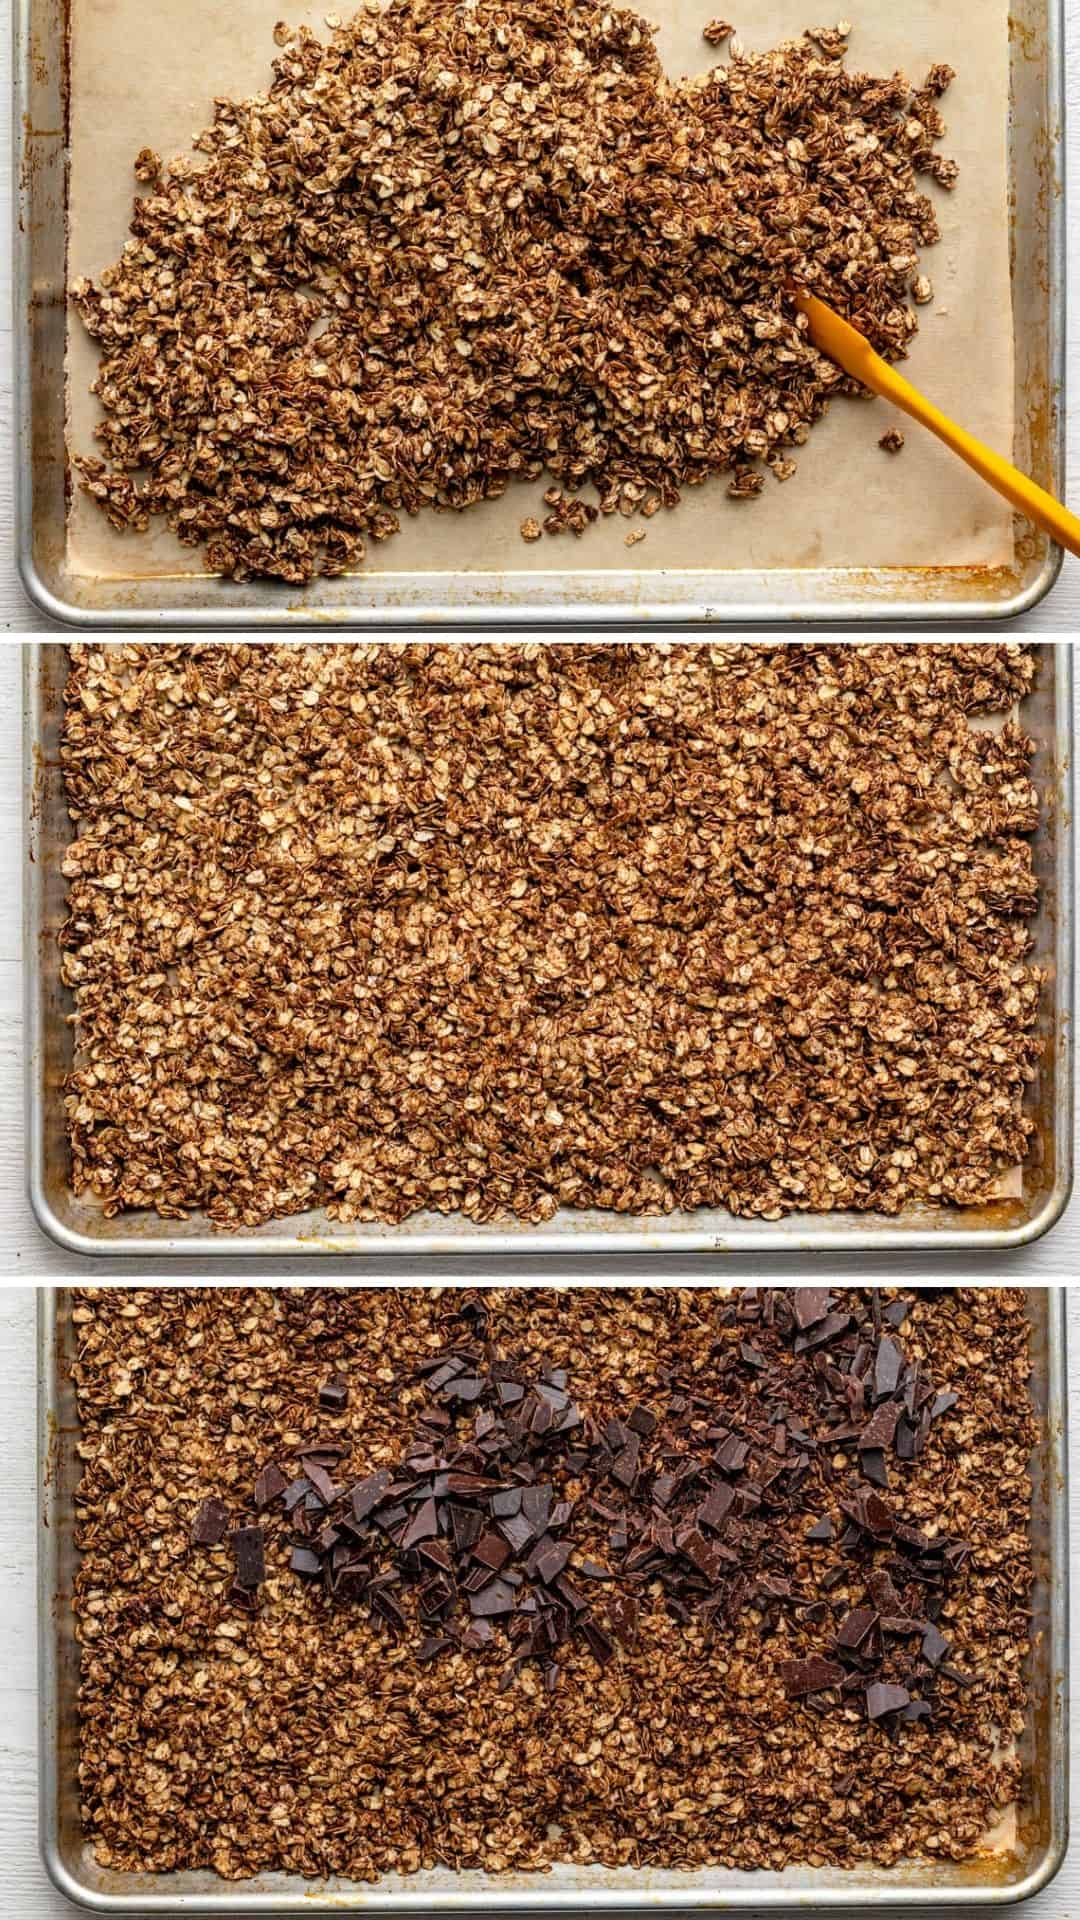 3 image collage to show the steps for cooking the granola